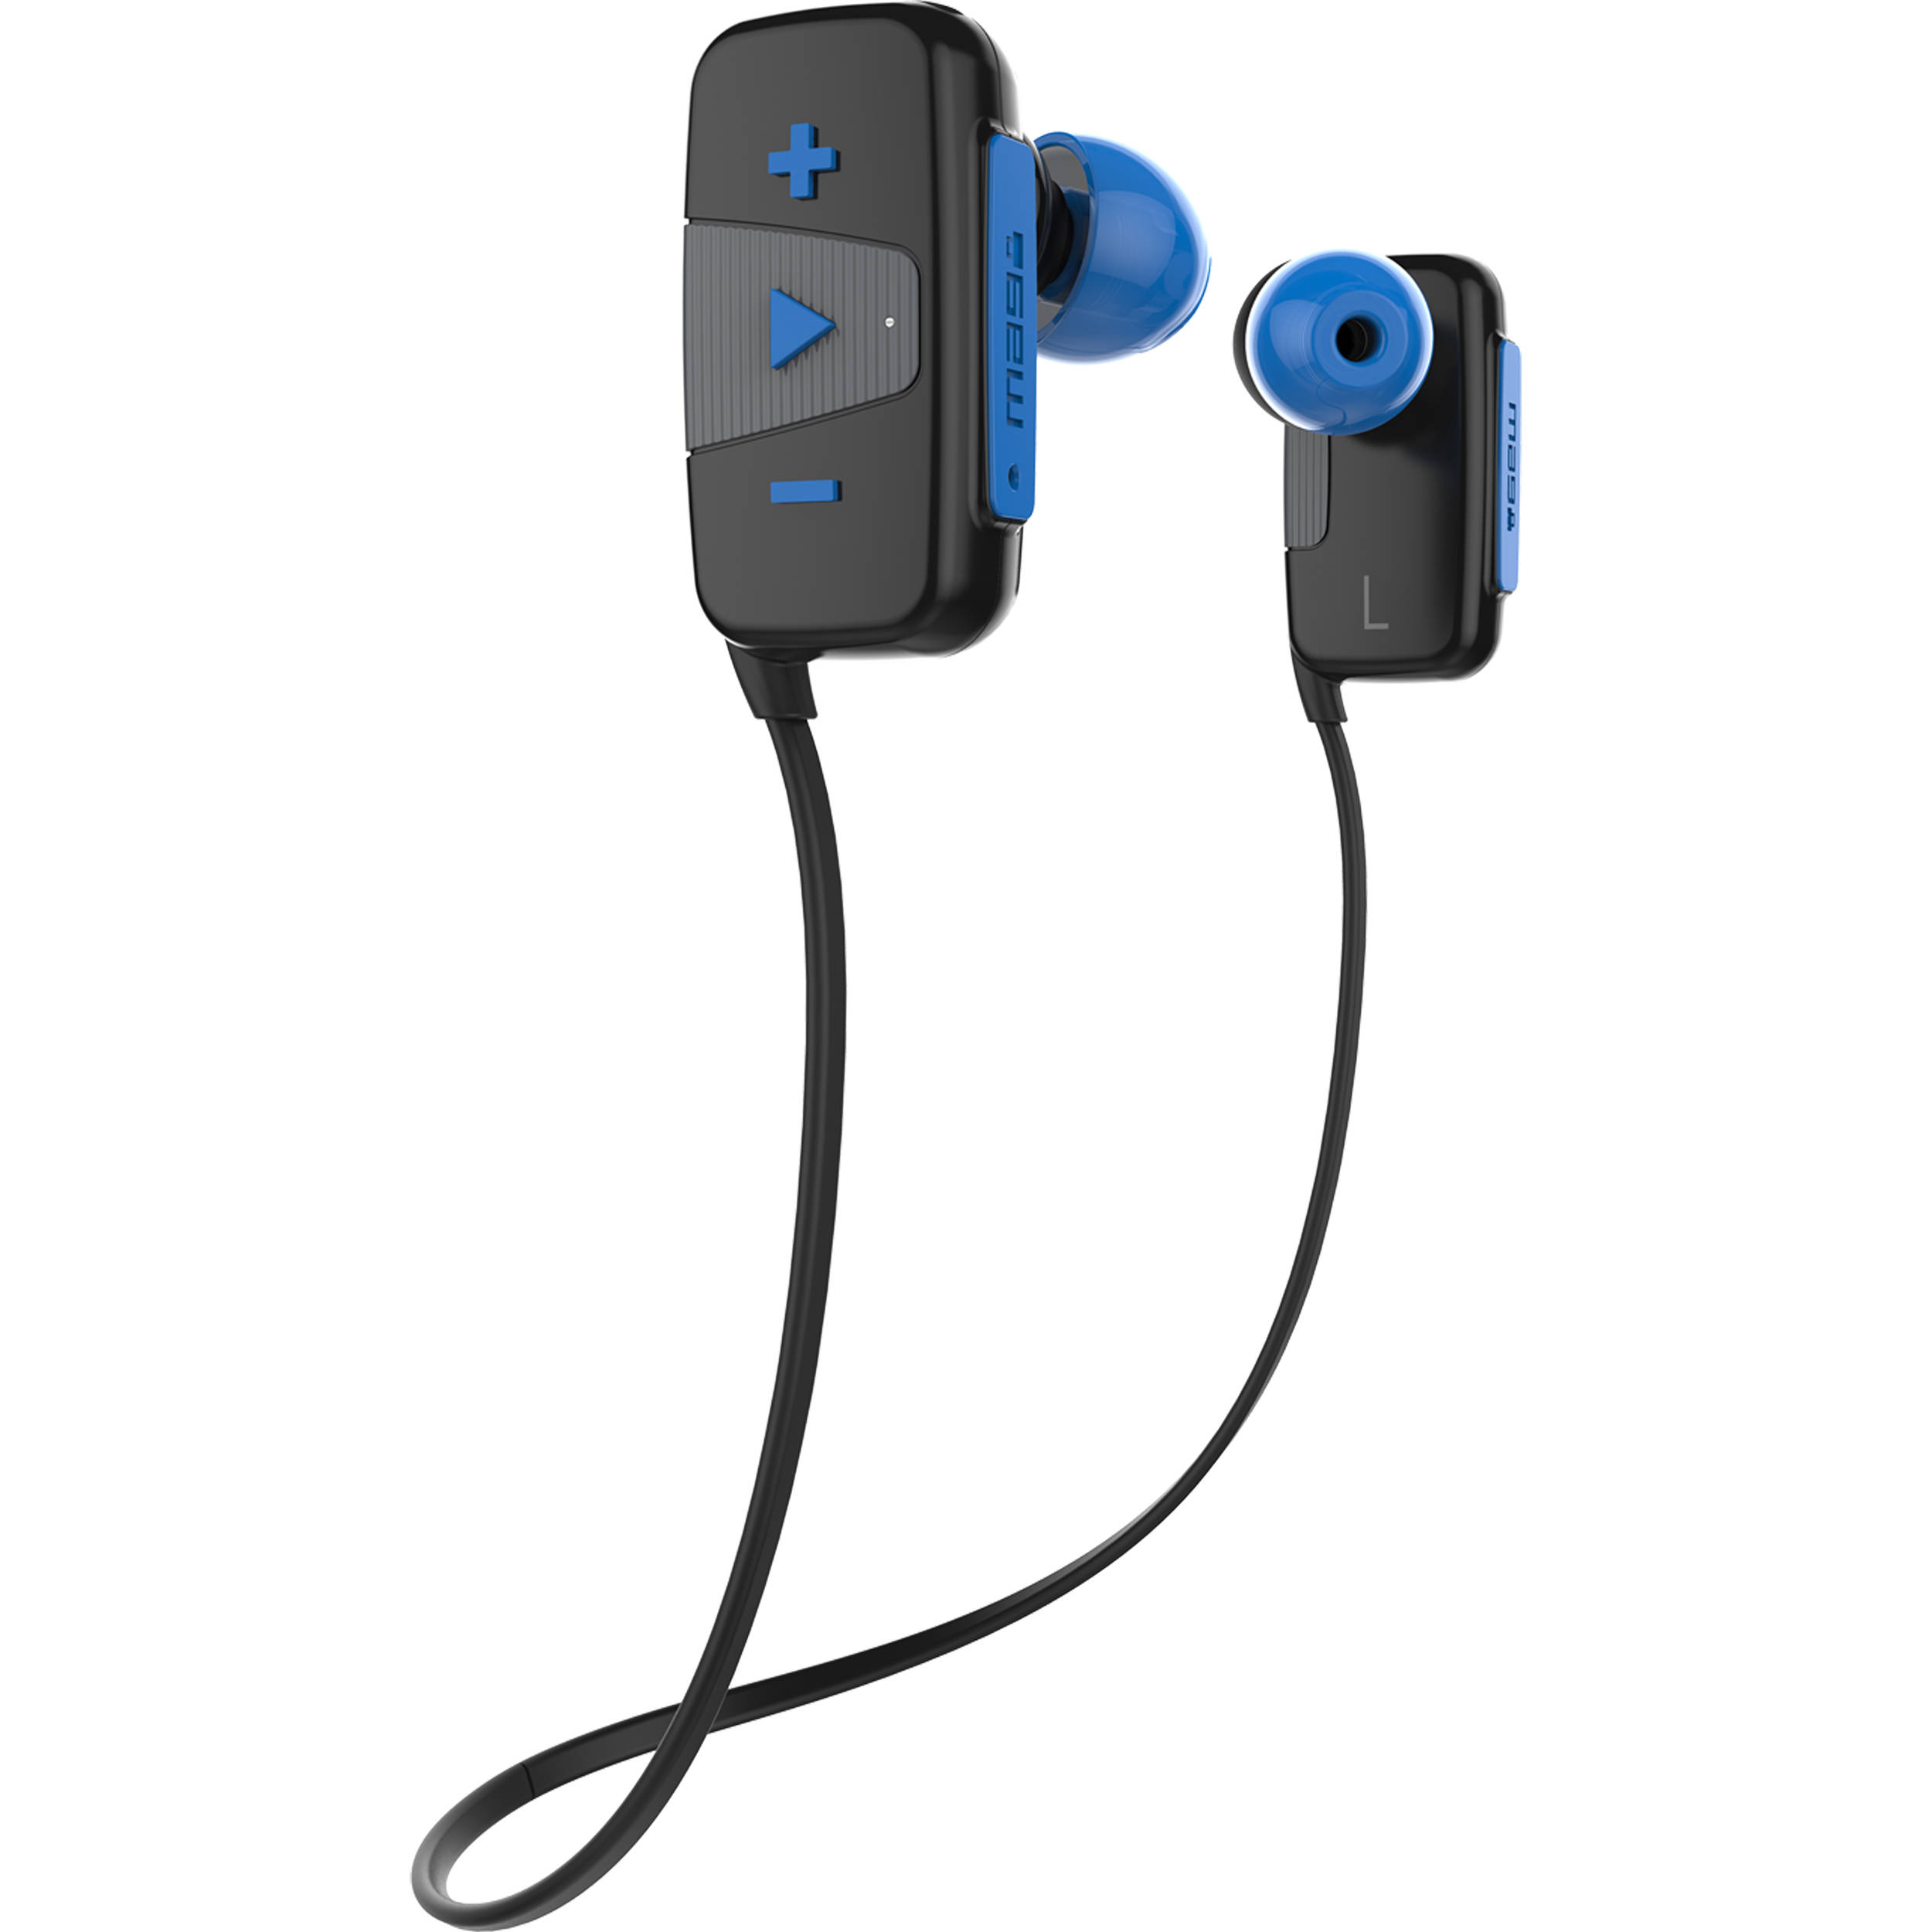 c9212774fb32ec jam Transit Mini Wireless Earbuds (Blue) HX-EP315BL B&H Photo